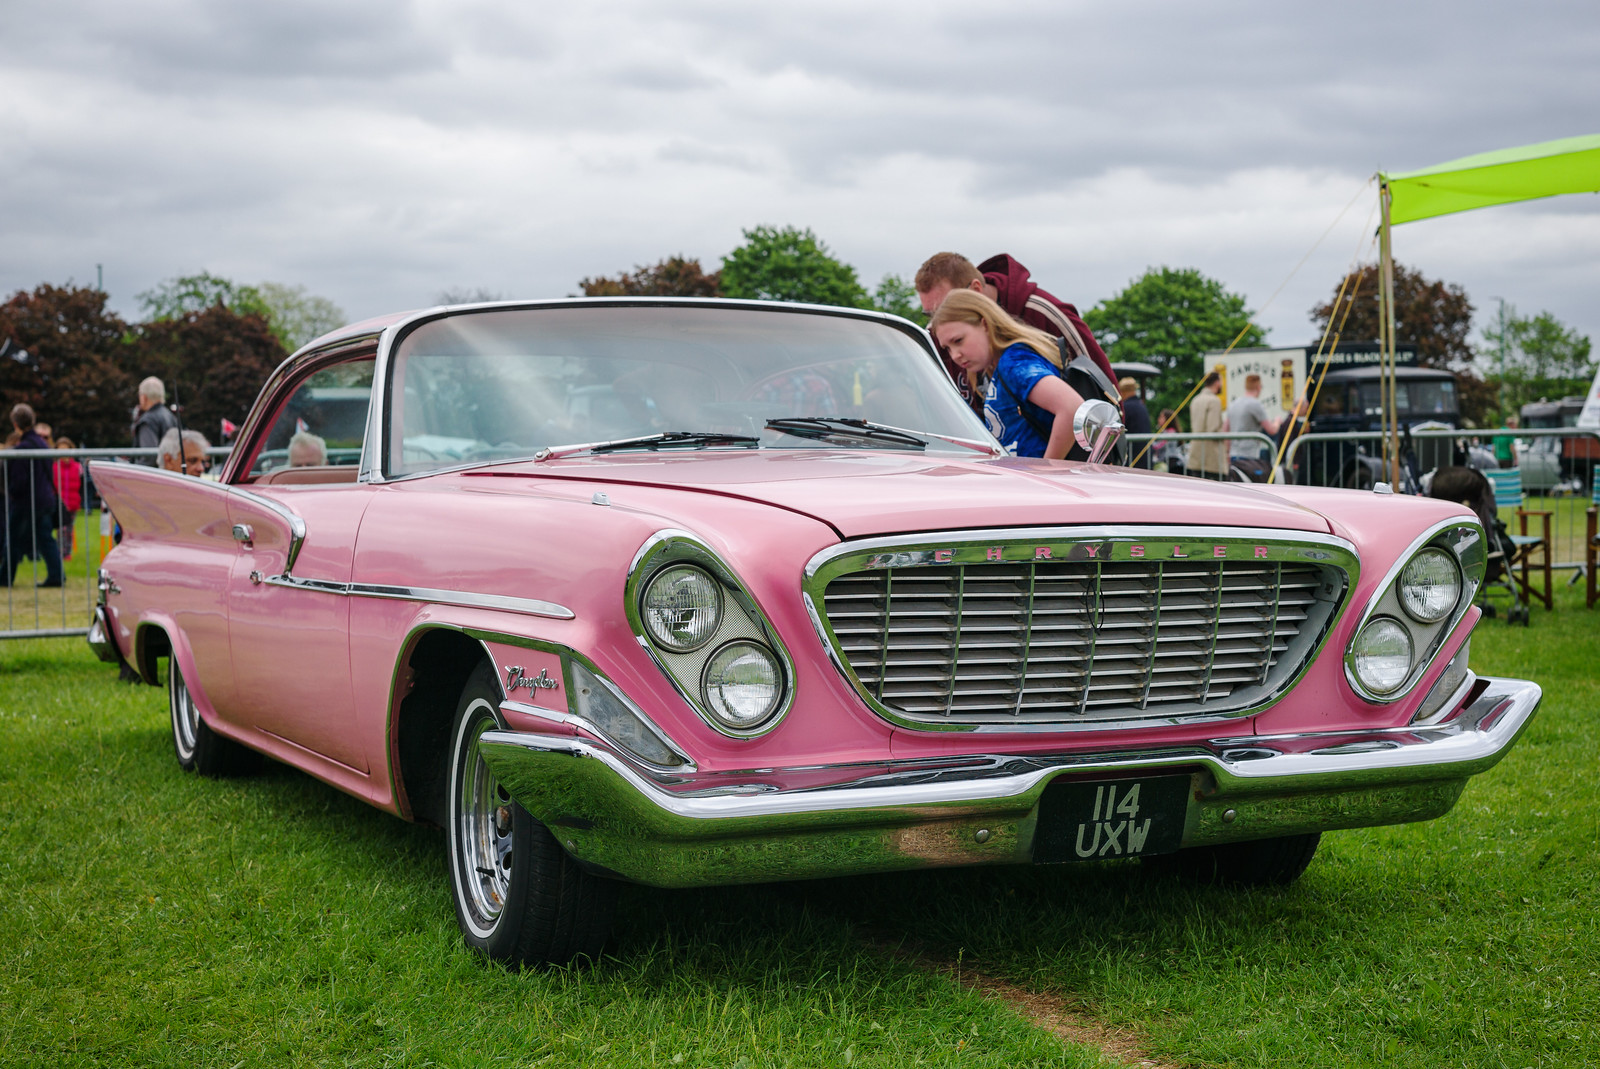 A glance in the pink Chrysler